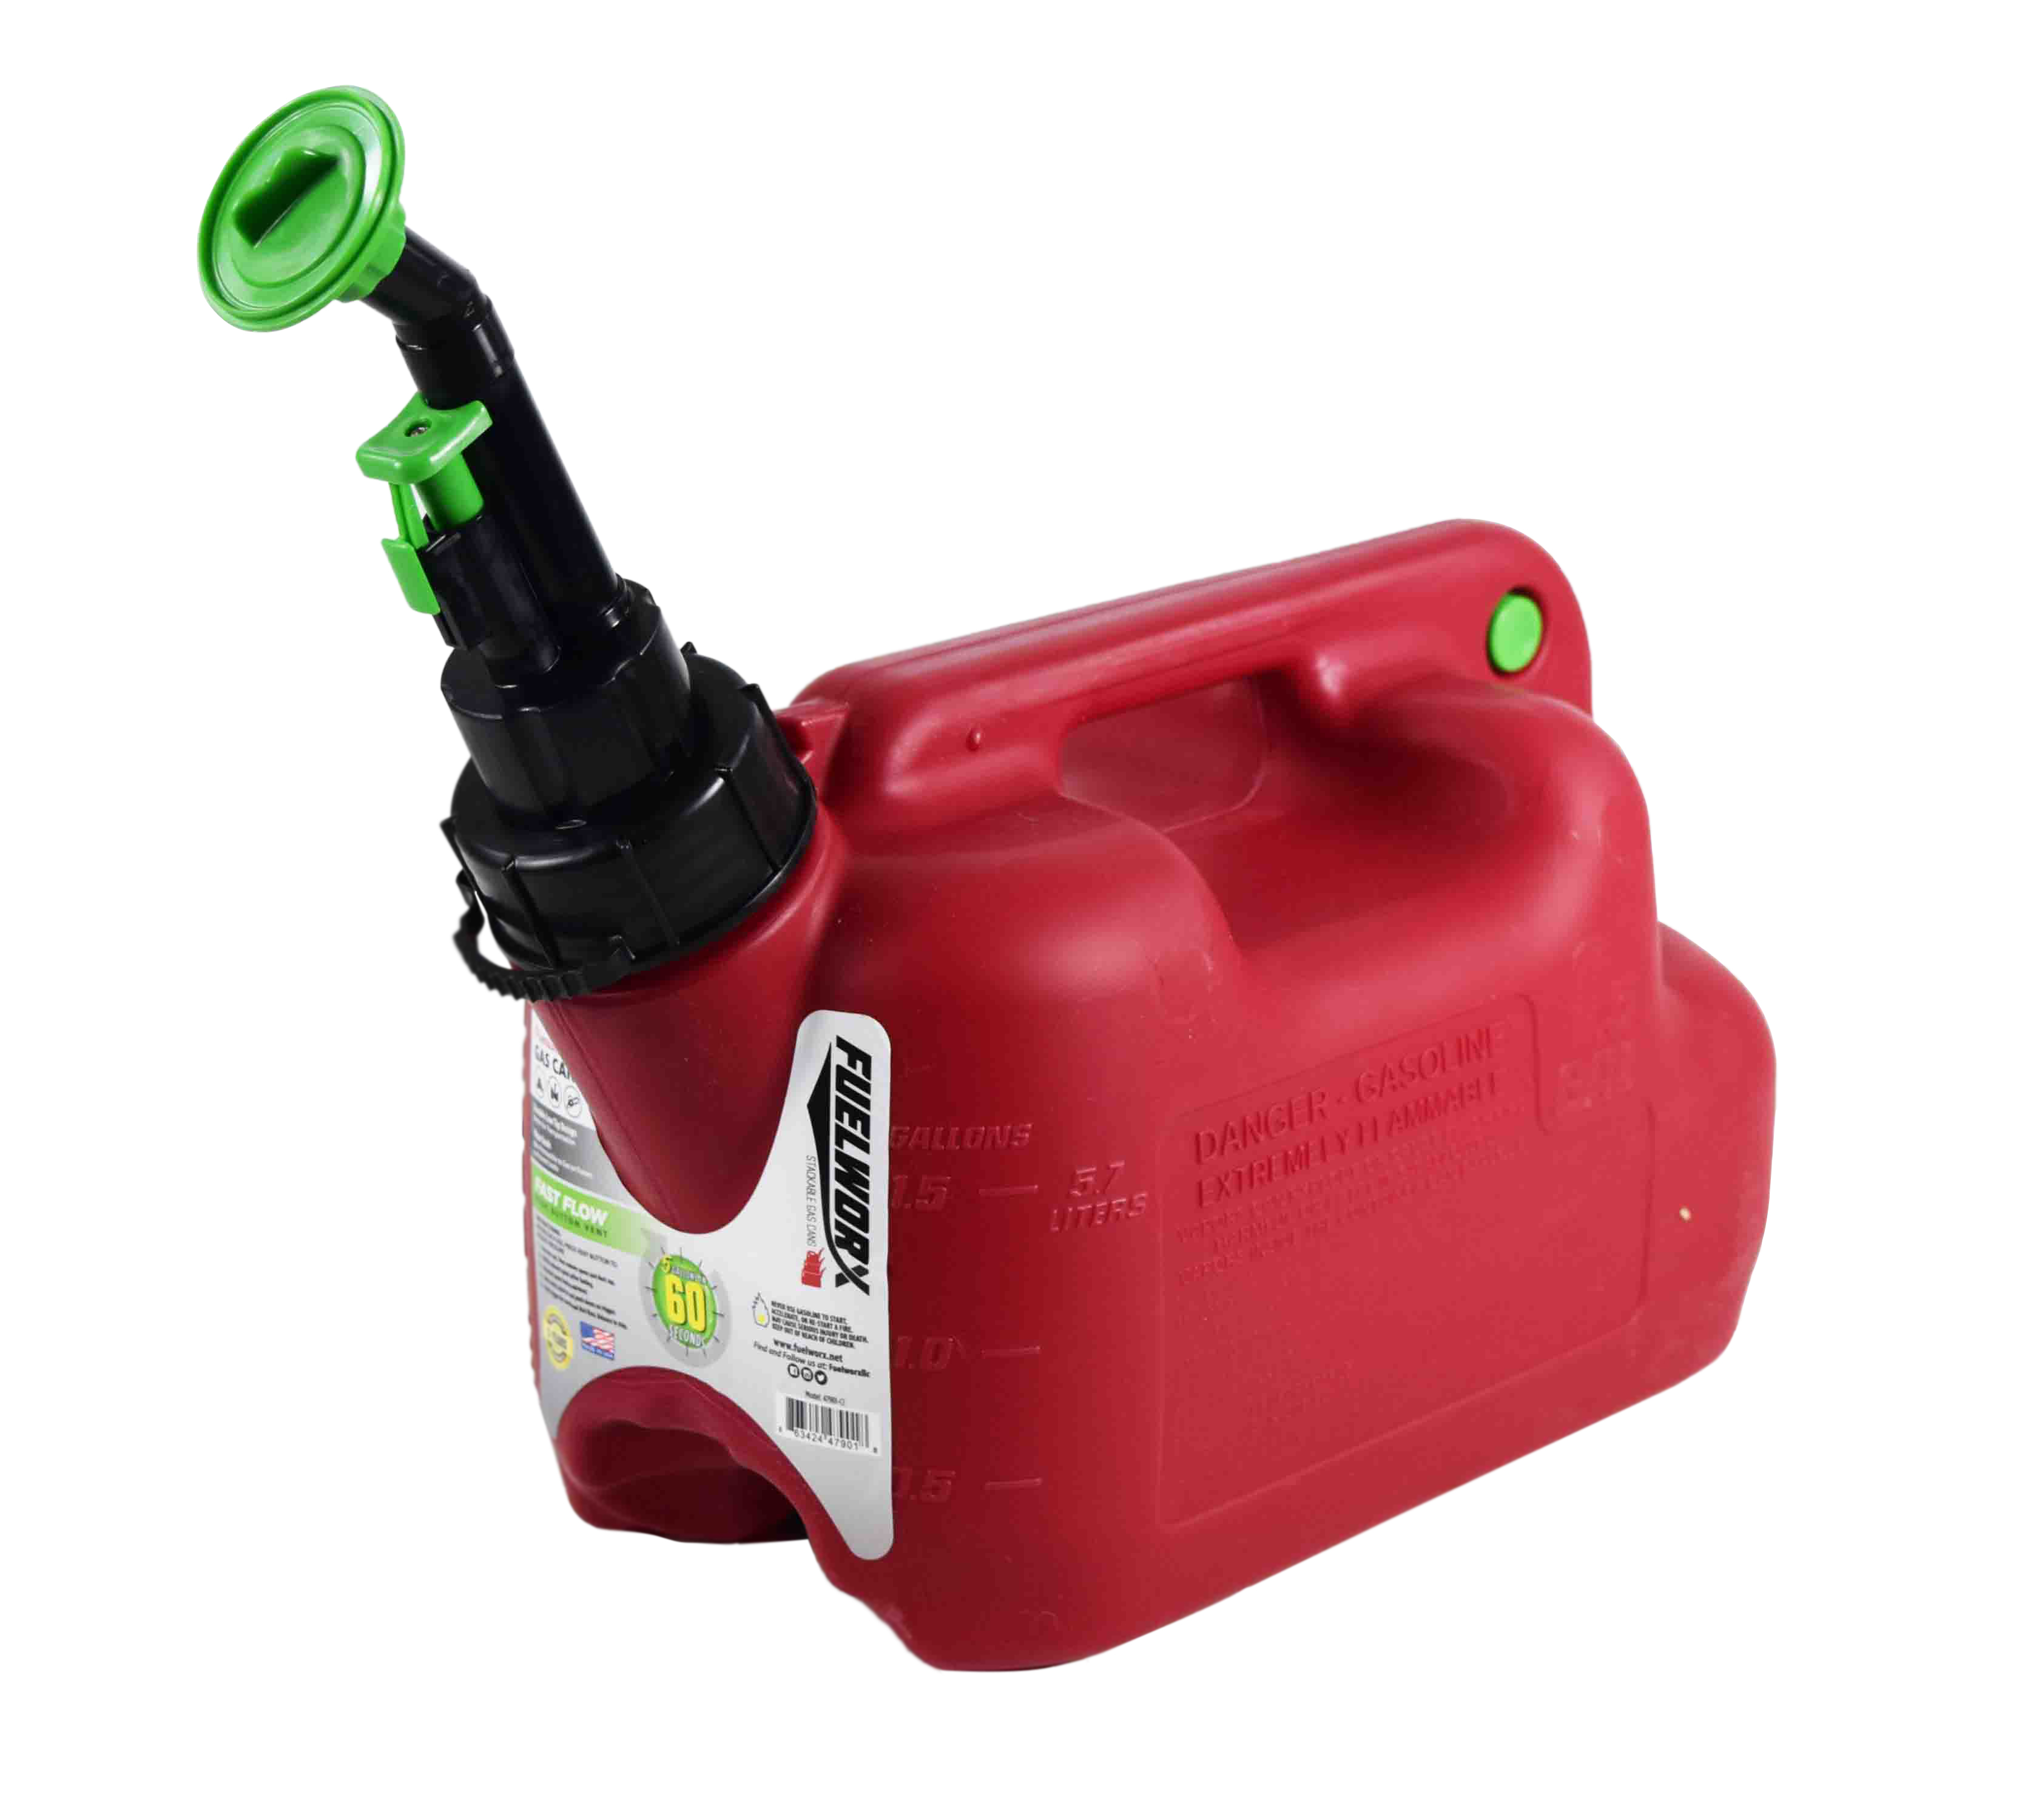 Fuelworx-Red-1.5-Gallon-Stackable-Fast-Pour-Gas-Fuel-Cans-CARB-Compliant-Made-in-The-USA-1.5-Gallon-Gas-Can-Single-image-2